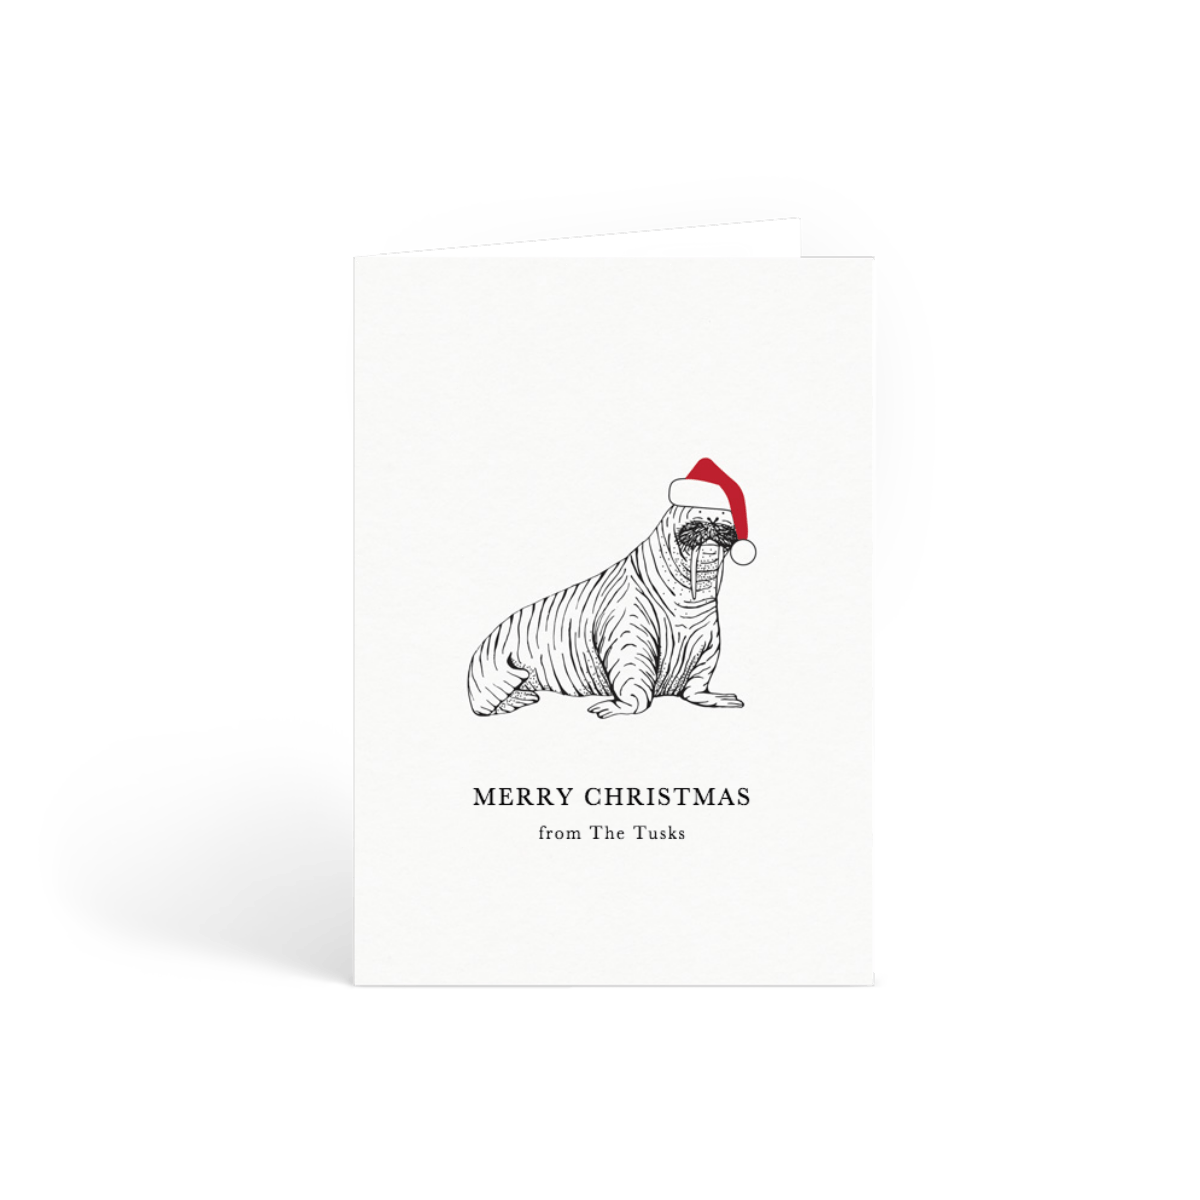 Https%3a%2f%2fwww.papier.com%2fproduct image%2f12490%2f2%2fchristmas walrus 3145 front 1542211295.png?ixlib=rb 1.1